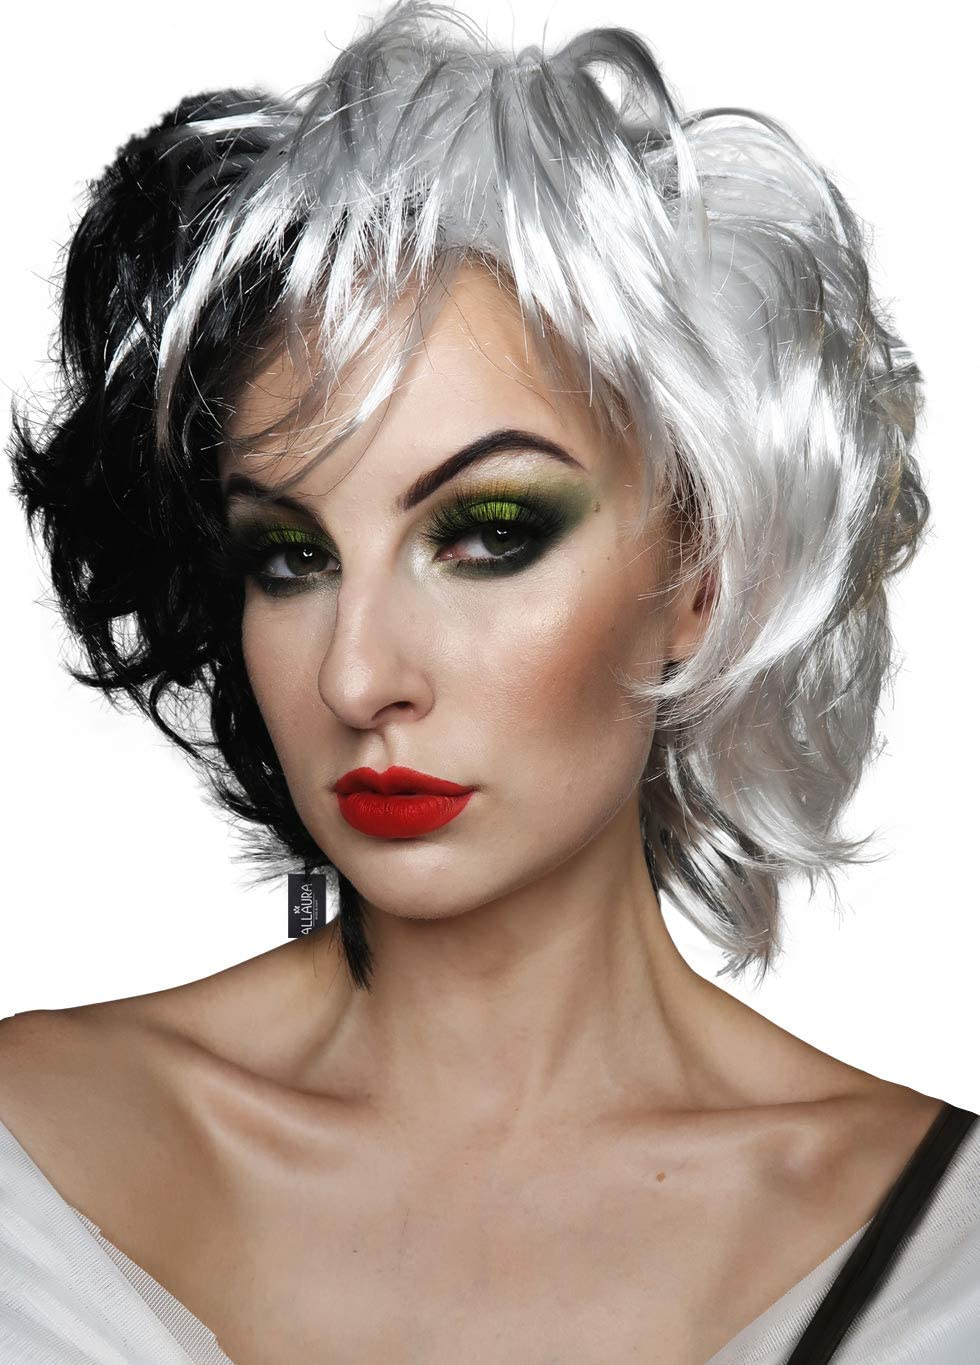 Wig Cap Included Cruella De Vil Costume Wig Fits Adult /& Child Short Black White Wigs for Cosplay Halloween